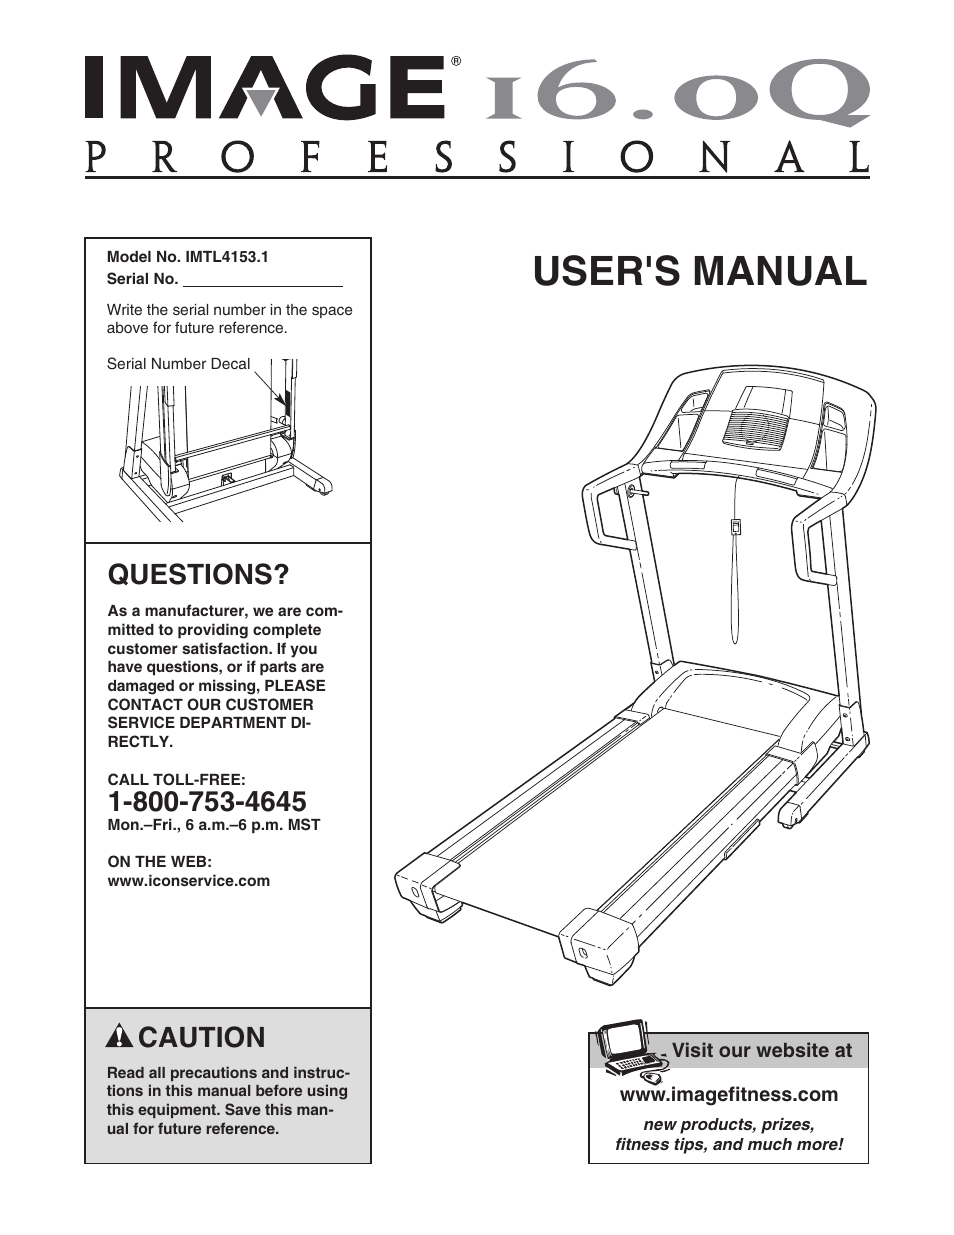 Image 160 Q Treadmill Imtl41531 User Manual 30 Pages Proform Wiring Diagram